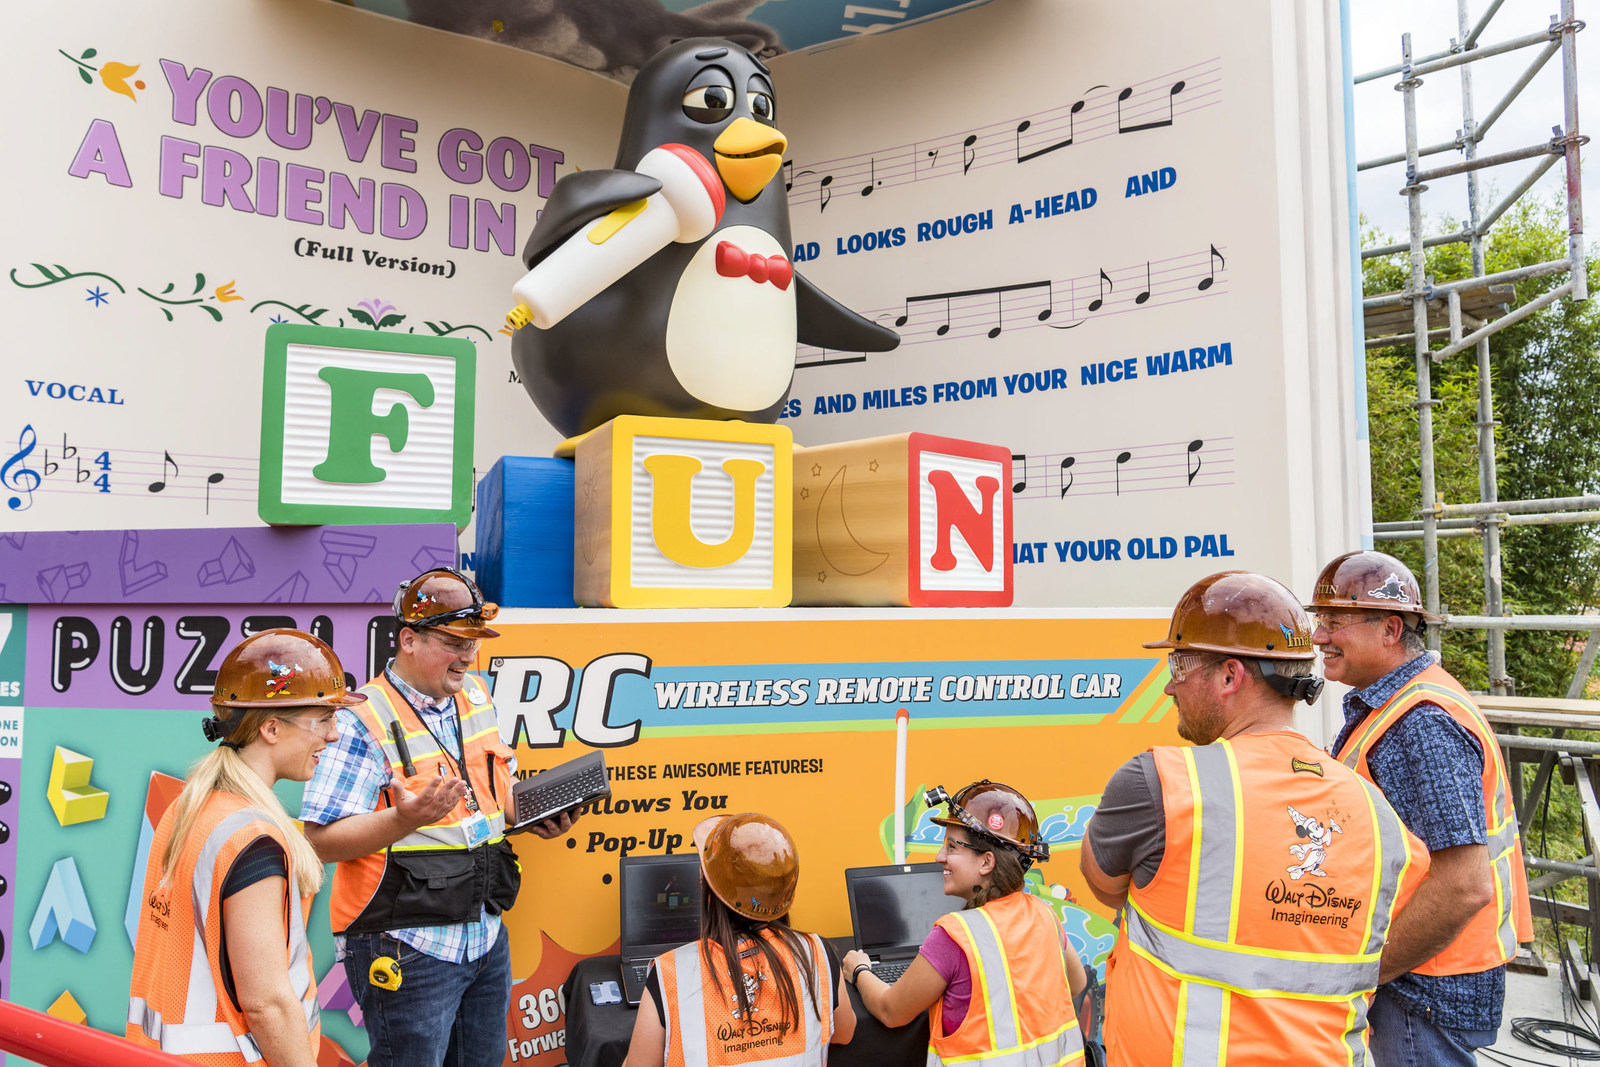 "Wheezy, the squeaky toy penguin from the Disney•Pixar ""Toy Story"" films, will delight guests riding Slinky Dog Dash, the family-friendly coaster that will be part of the new Toy Story Land opening June 30, 2018, at Disney's Hollywood Studios. The all-new Audio-Animatronic figure will serenade guests with ""You've Got a Friend in Me,"" the popular song from the films."